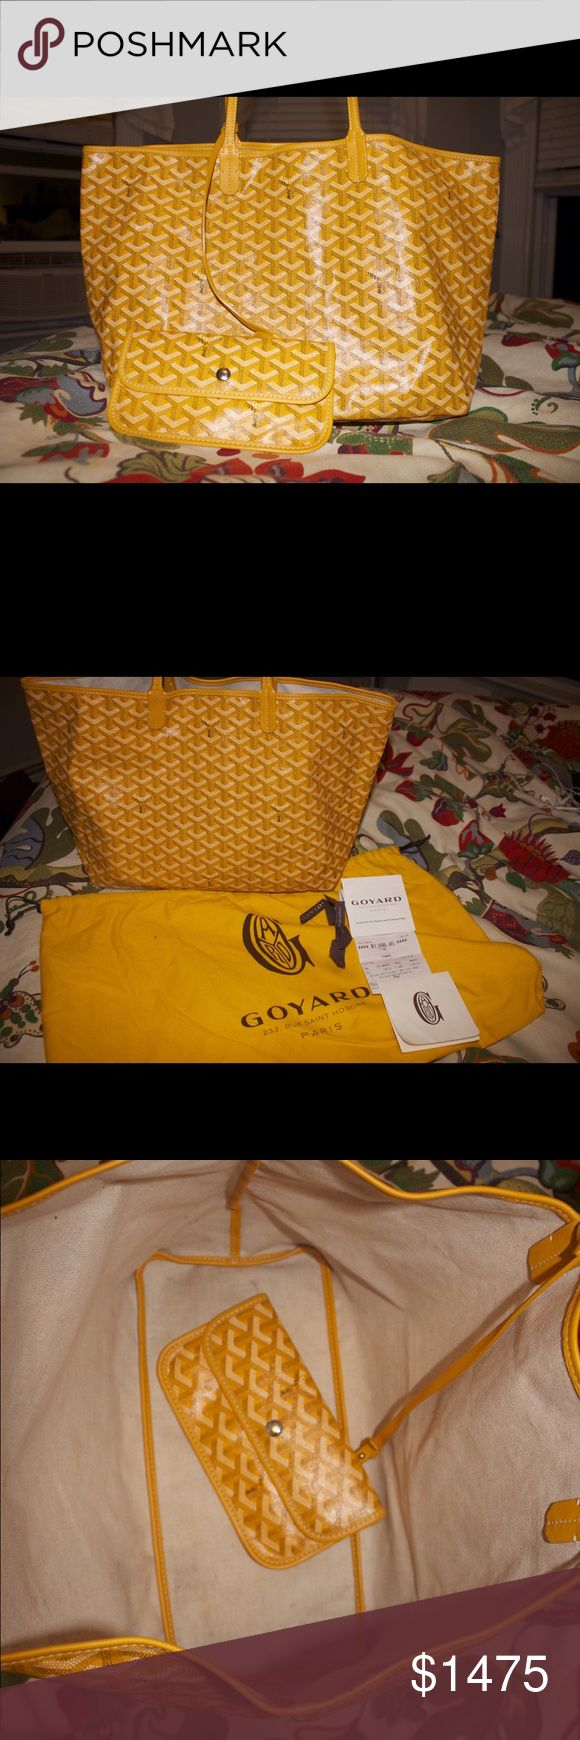 Yellow Goyard St. Louis PM Tote Beautiful yellow Goyard St. Louis PM Tote. Very lightly used with no scratches or blemishes on the exterior of the bag with minor wear and tear on the inside of the bag. Purchased at the Goyard boutique in New York City for $1698 (now sells for almost $1800) and can provide photos of the receipt. I am firm on the price because it is in such great condition. I love this bag and would love for it to go to a good home! Goyard Bags Totes